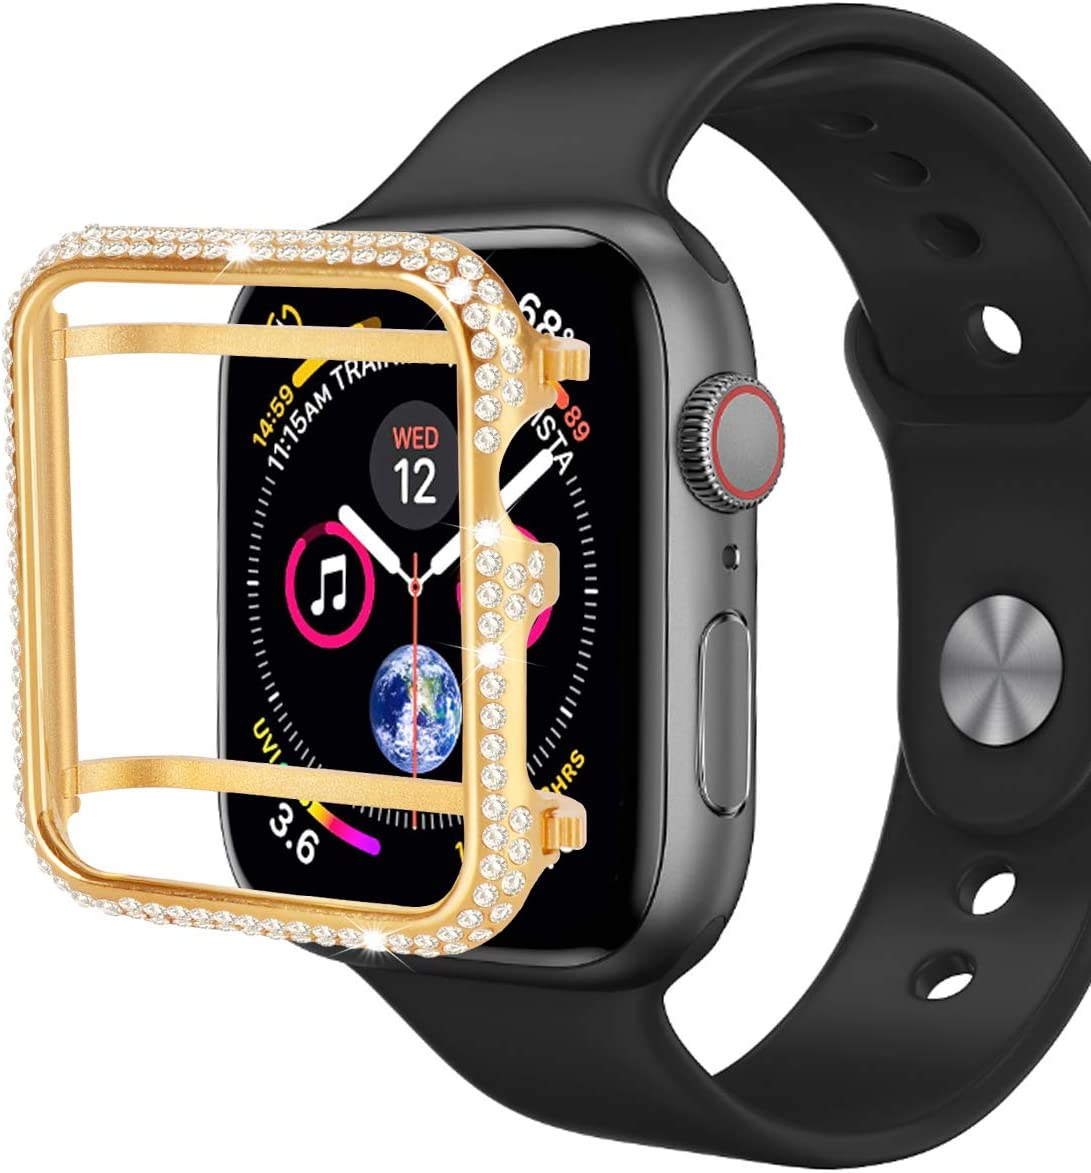 Hiseanllo Compatible with Apple Watch Case 42mm iWatch Bumper Protective Cover Crystal Rhinestone Bezel for Apple Watch Series 1, Series 2, Series 3 (Gold, 42mm)